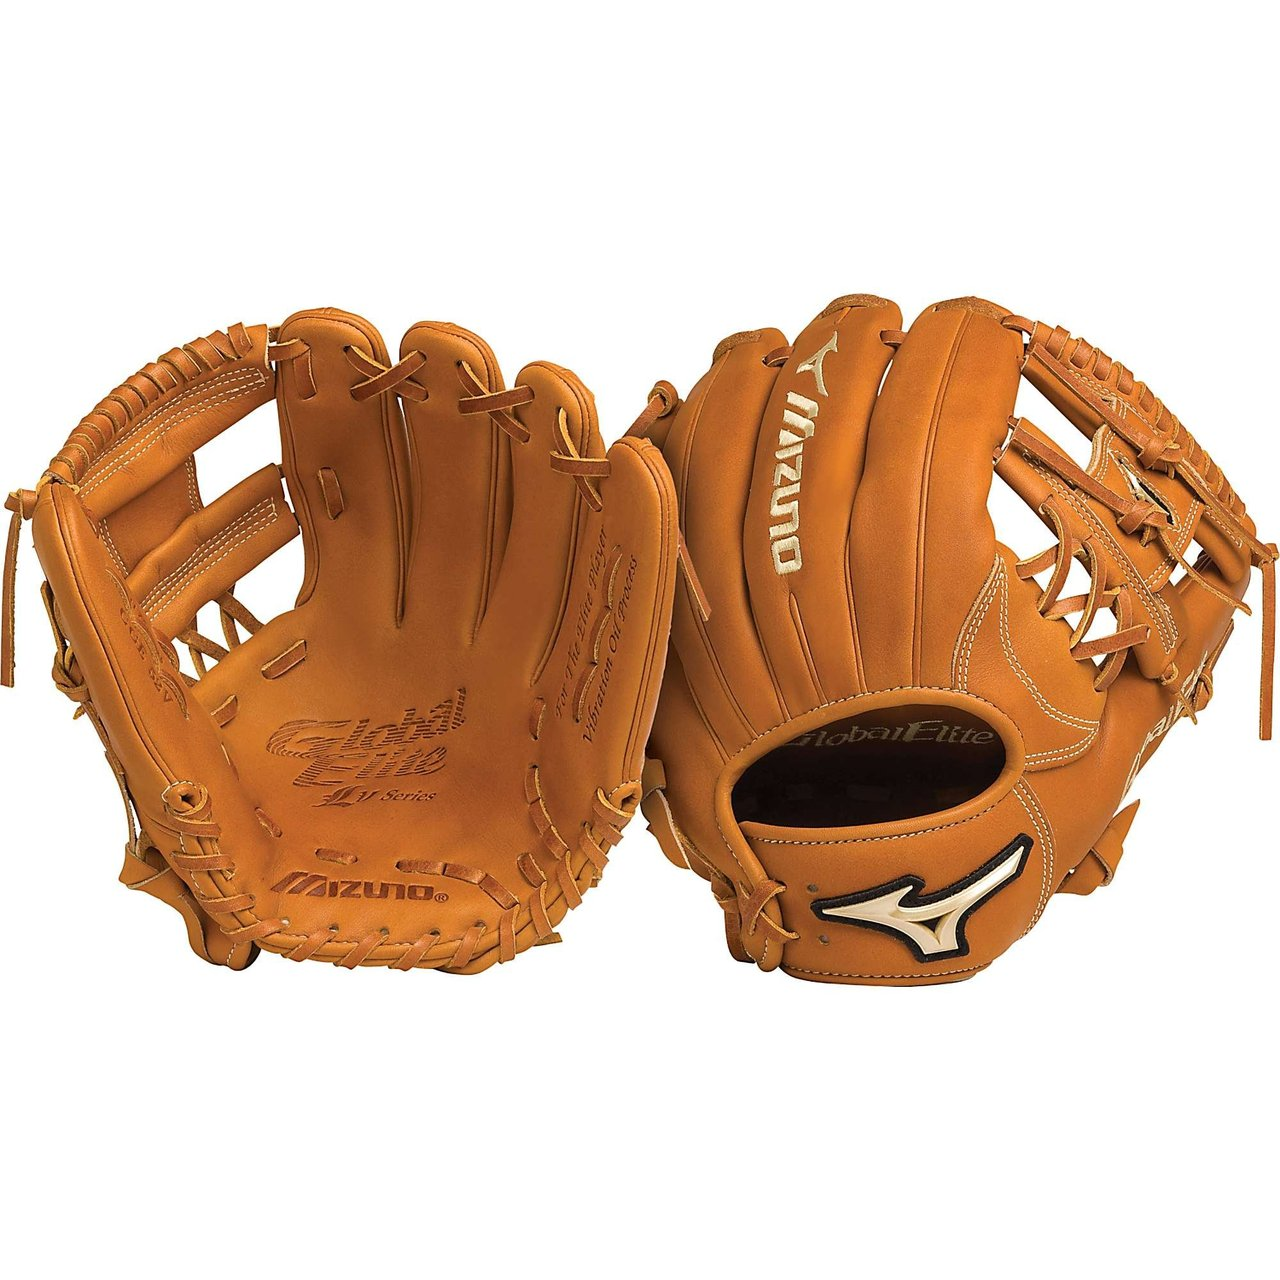 mizuno-gge52v-global-elite-vop-11-75-infield-baseball-glove-right-handed-throw GGE52V-Right Handed Throw Mizuno New Mizuno GGE52V Global Elite VOP 11.75 Infield Baseball Glove Right Handed